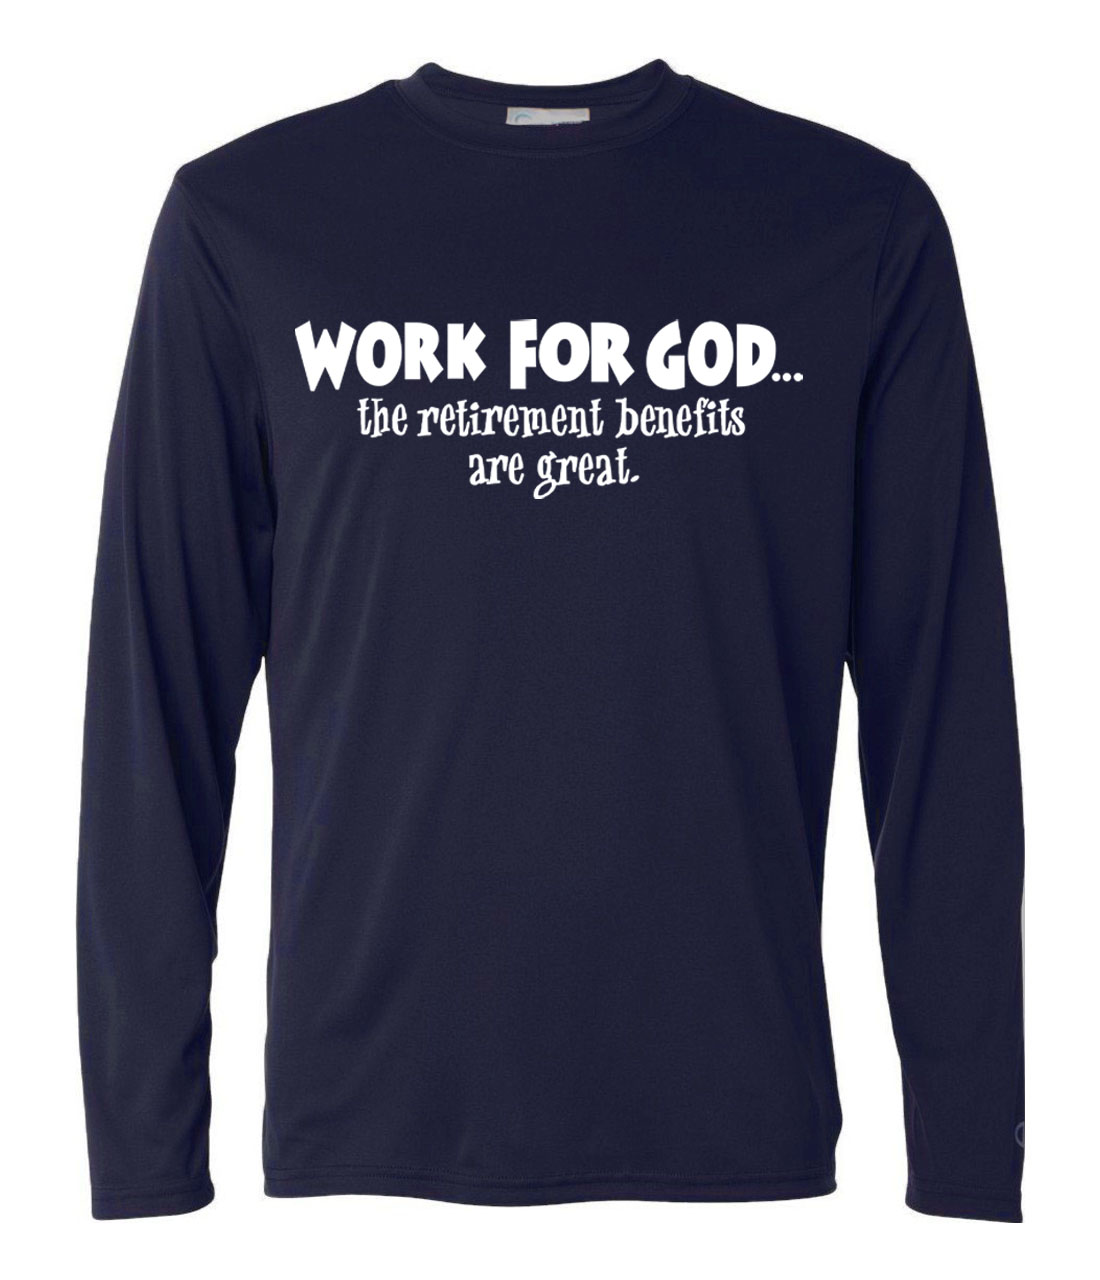 2017 Work For God the retirement benefits are great long sleeve t shirt men autumn cotton